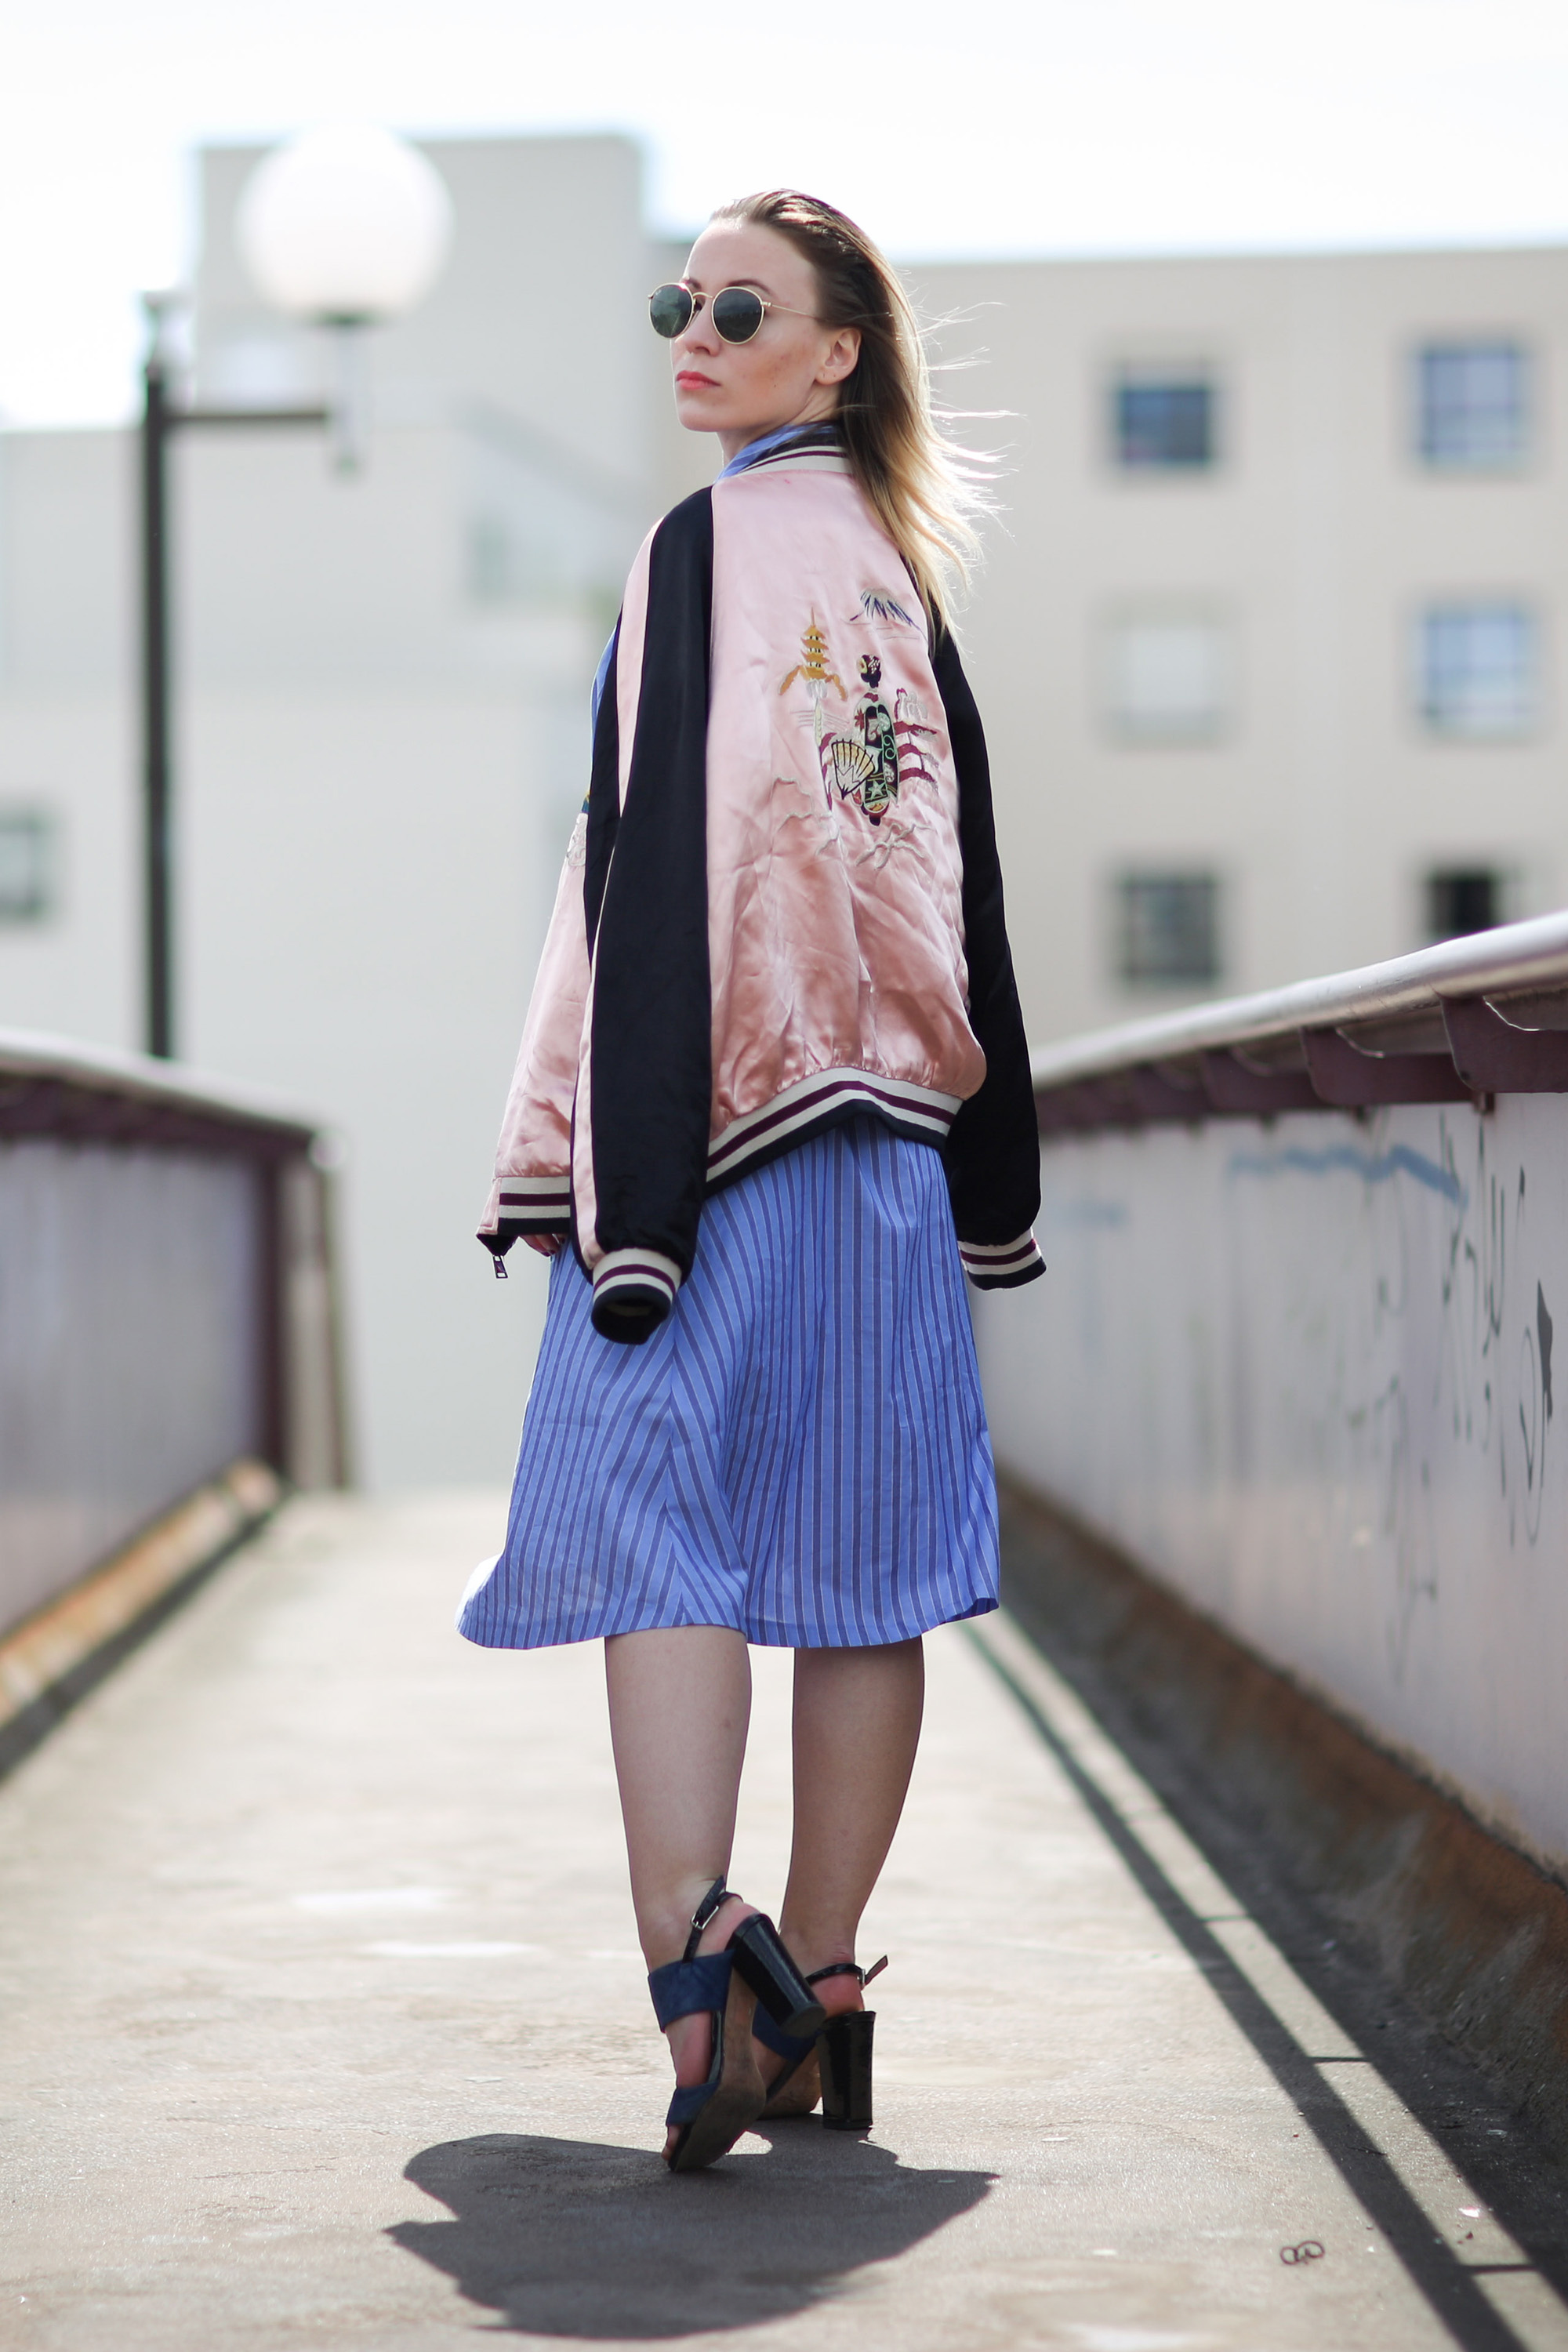 PARIS, FRANCE - MAY 08:  Amelie Lloyd (fashion blogger @ameetslloyd), is wearing a Sandro blue dress, Comptoir des Cotonniers blue shoes, a Zara black and pink bombers coat, Ray Ban sunglasses, and a Balenciaga bag, during a street style session,  on May 08, 2016 in Paris, .  (Photo by Edward Berthelot/Getty Images)